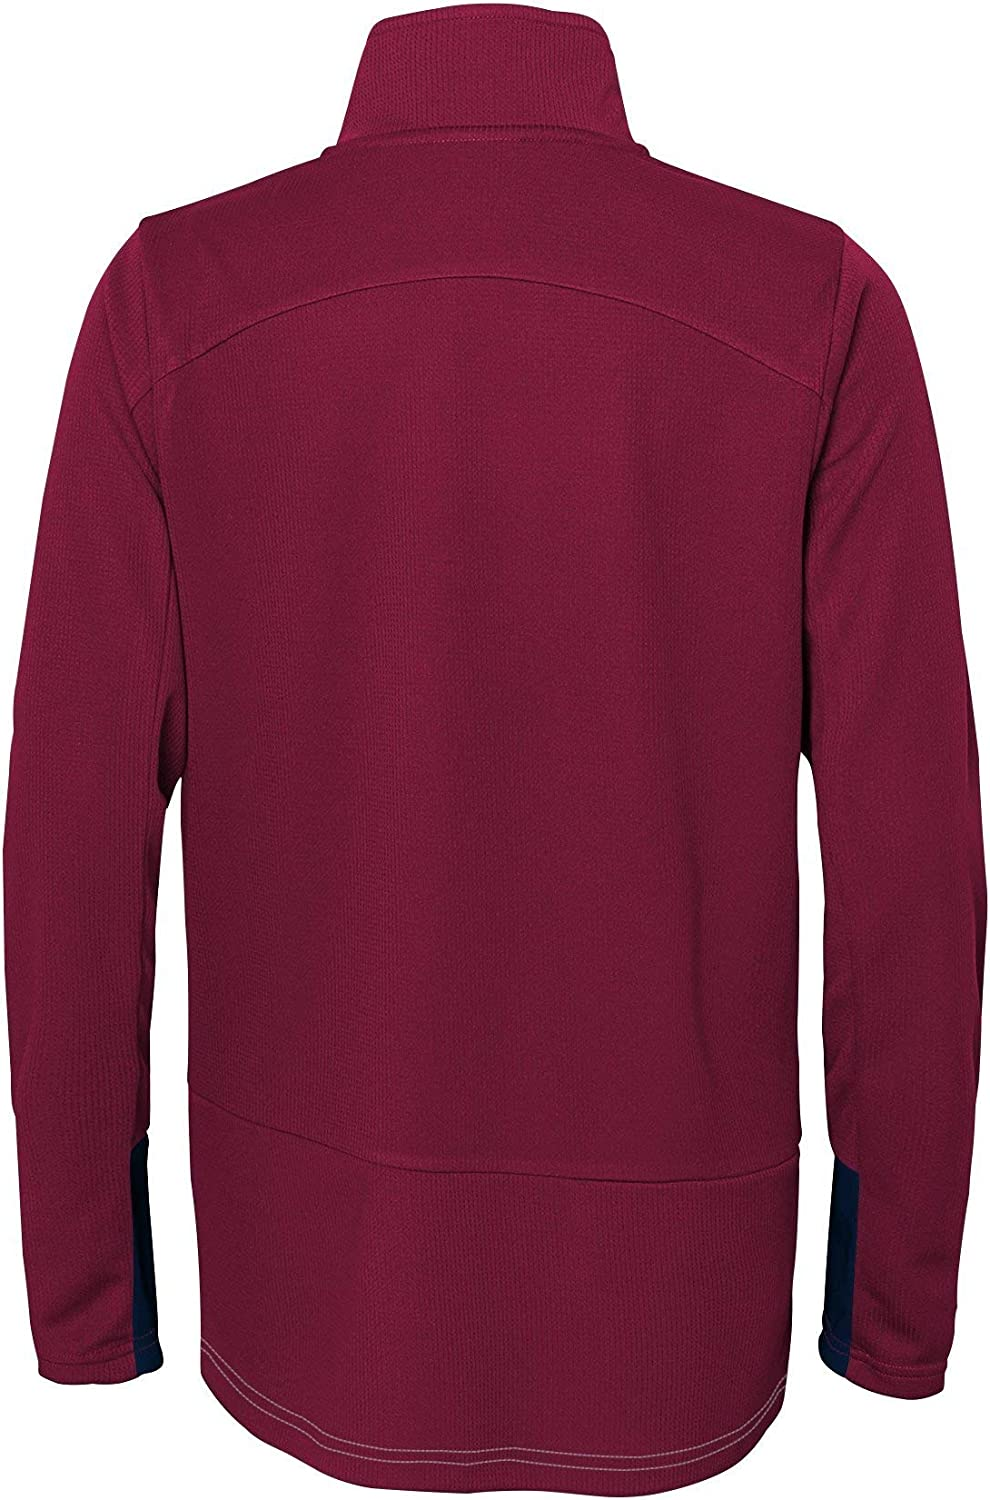 Outerstuff Boys Big Shooter 1//4 Zip Long Sleeve Top